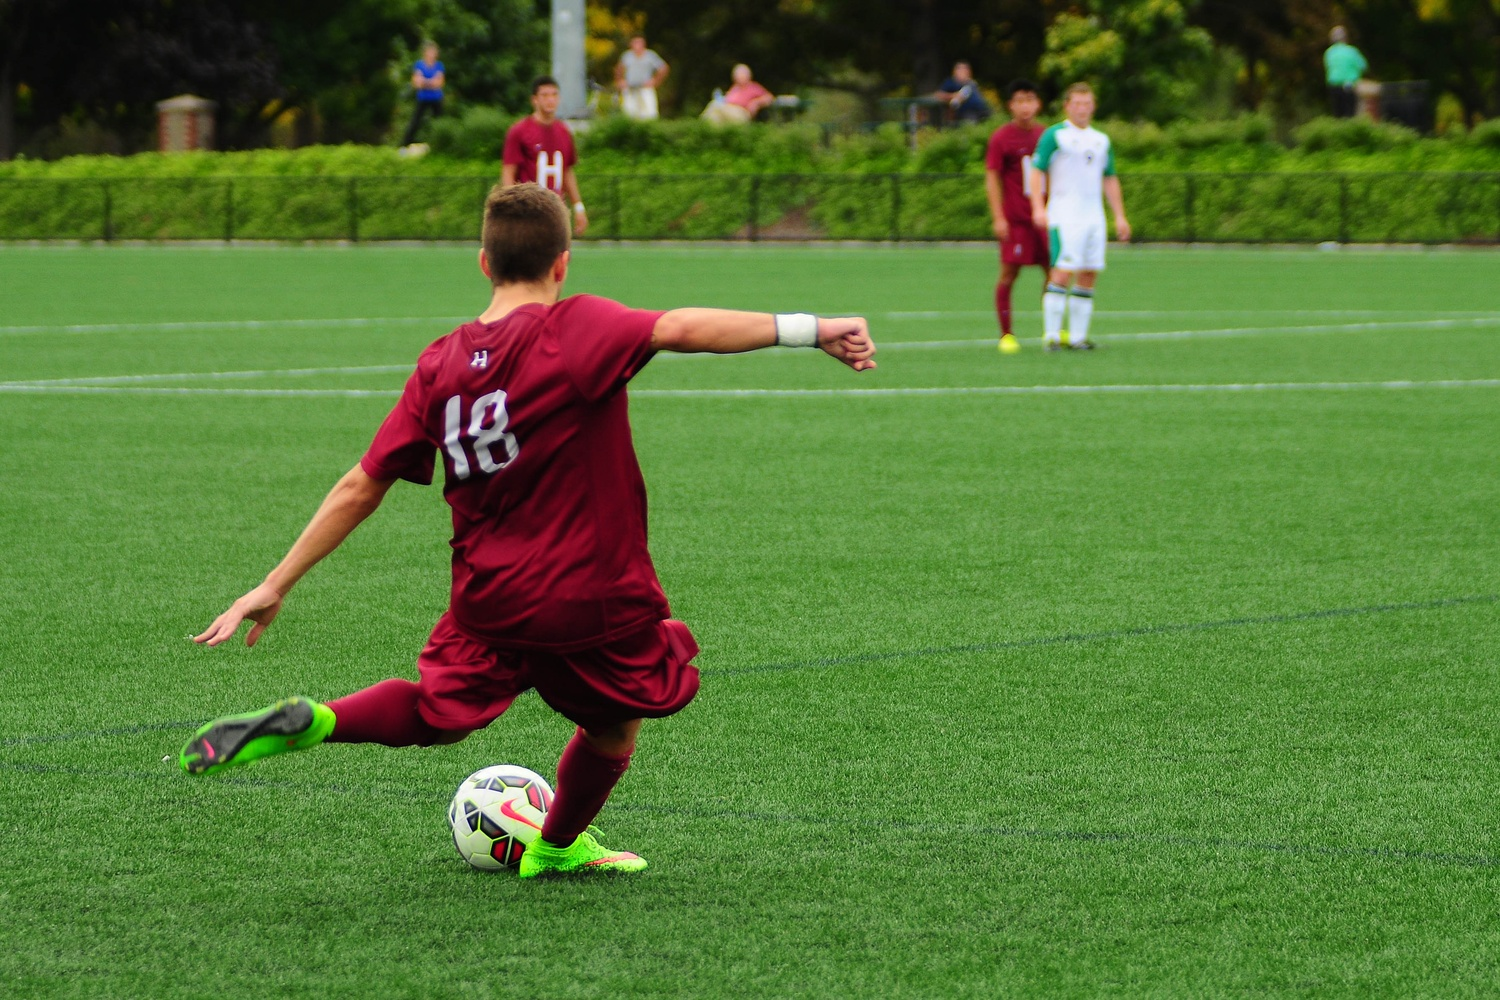 Sophomore midfielder Christian Sady, pictured in action last September, took several free kicks that led to immediate scoring chances Tuesday night against UNH.